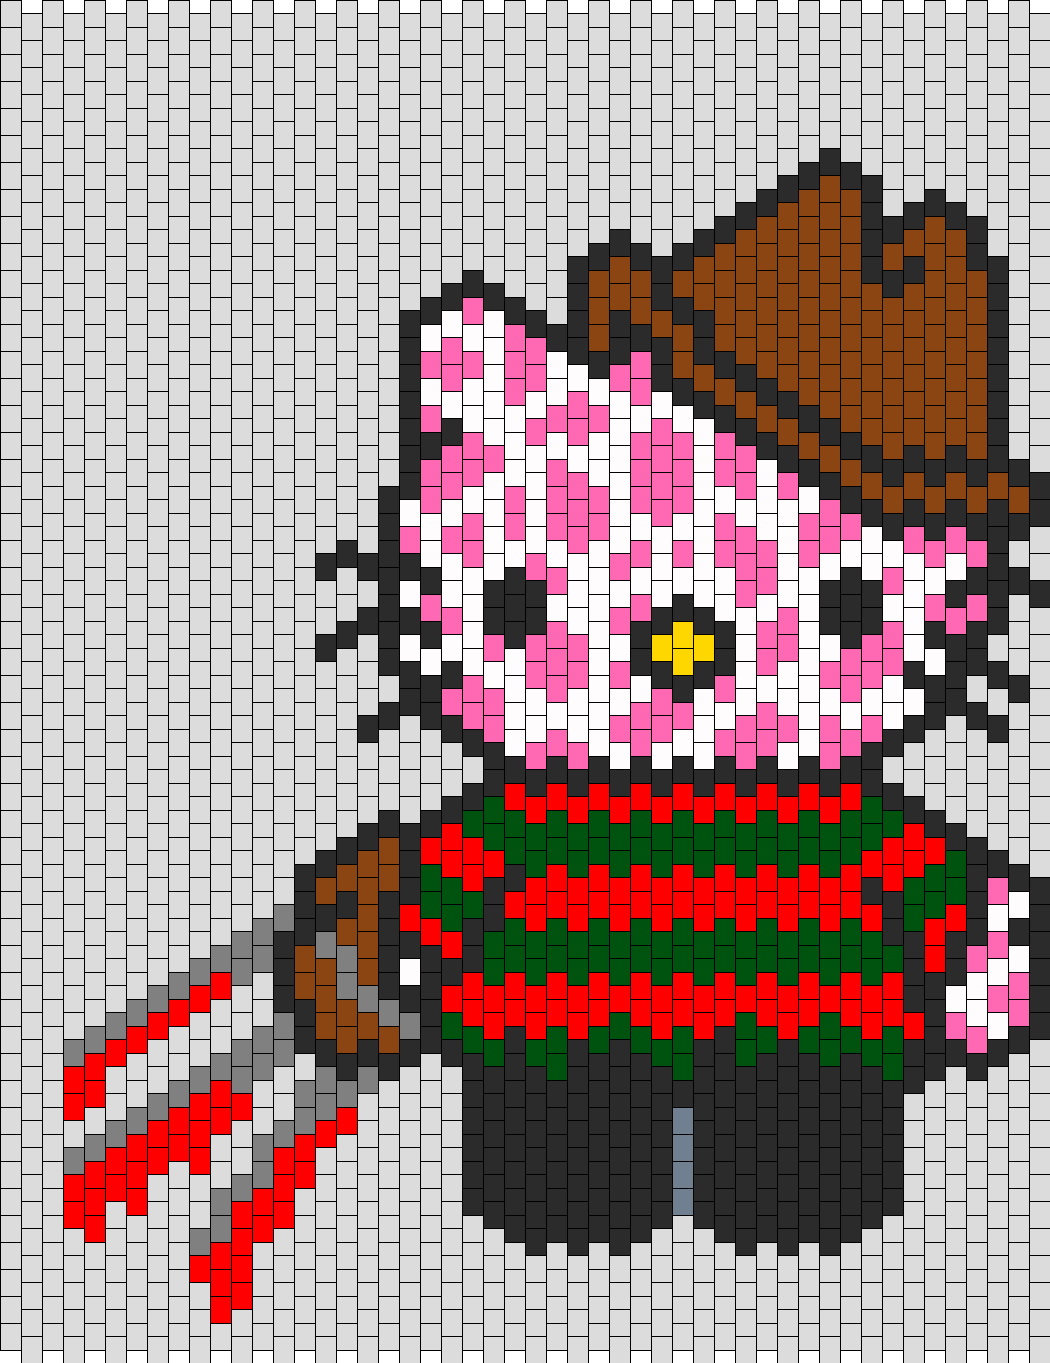 Freddy Krueger Hello Kitty